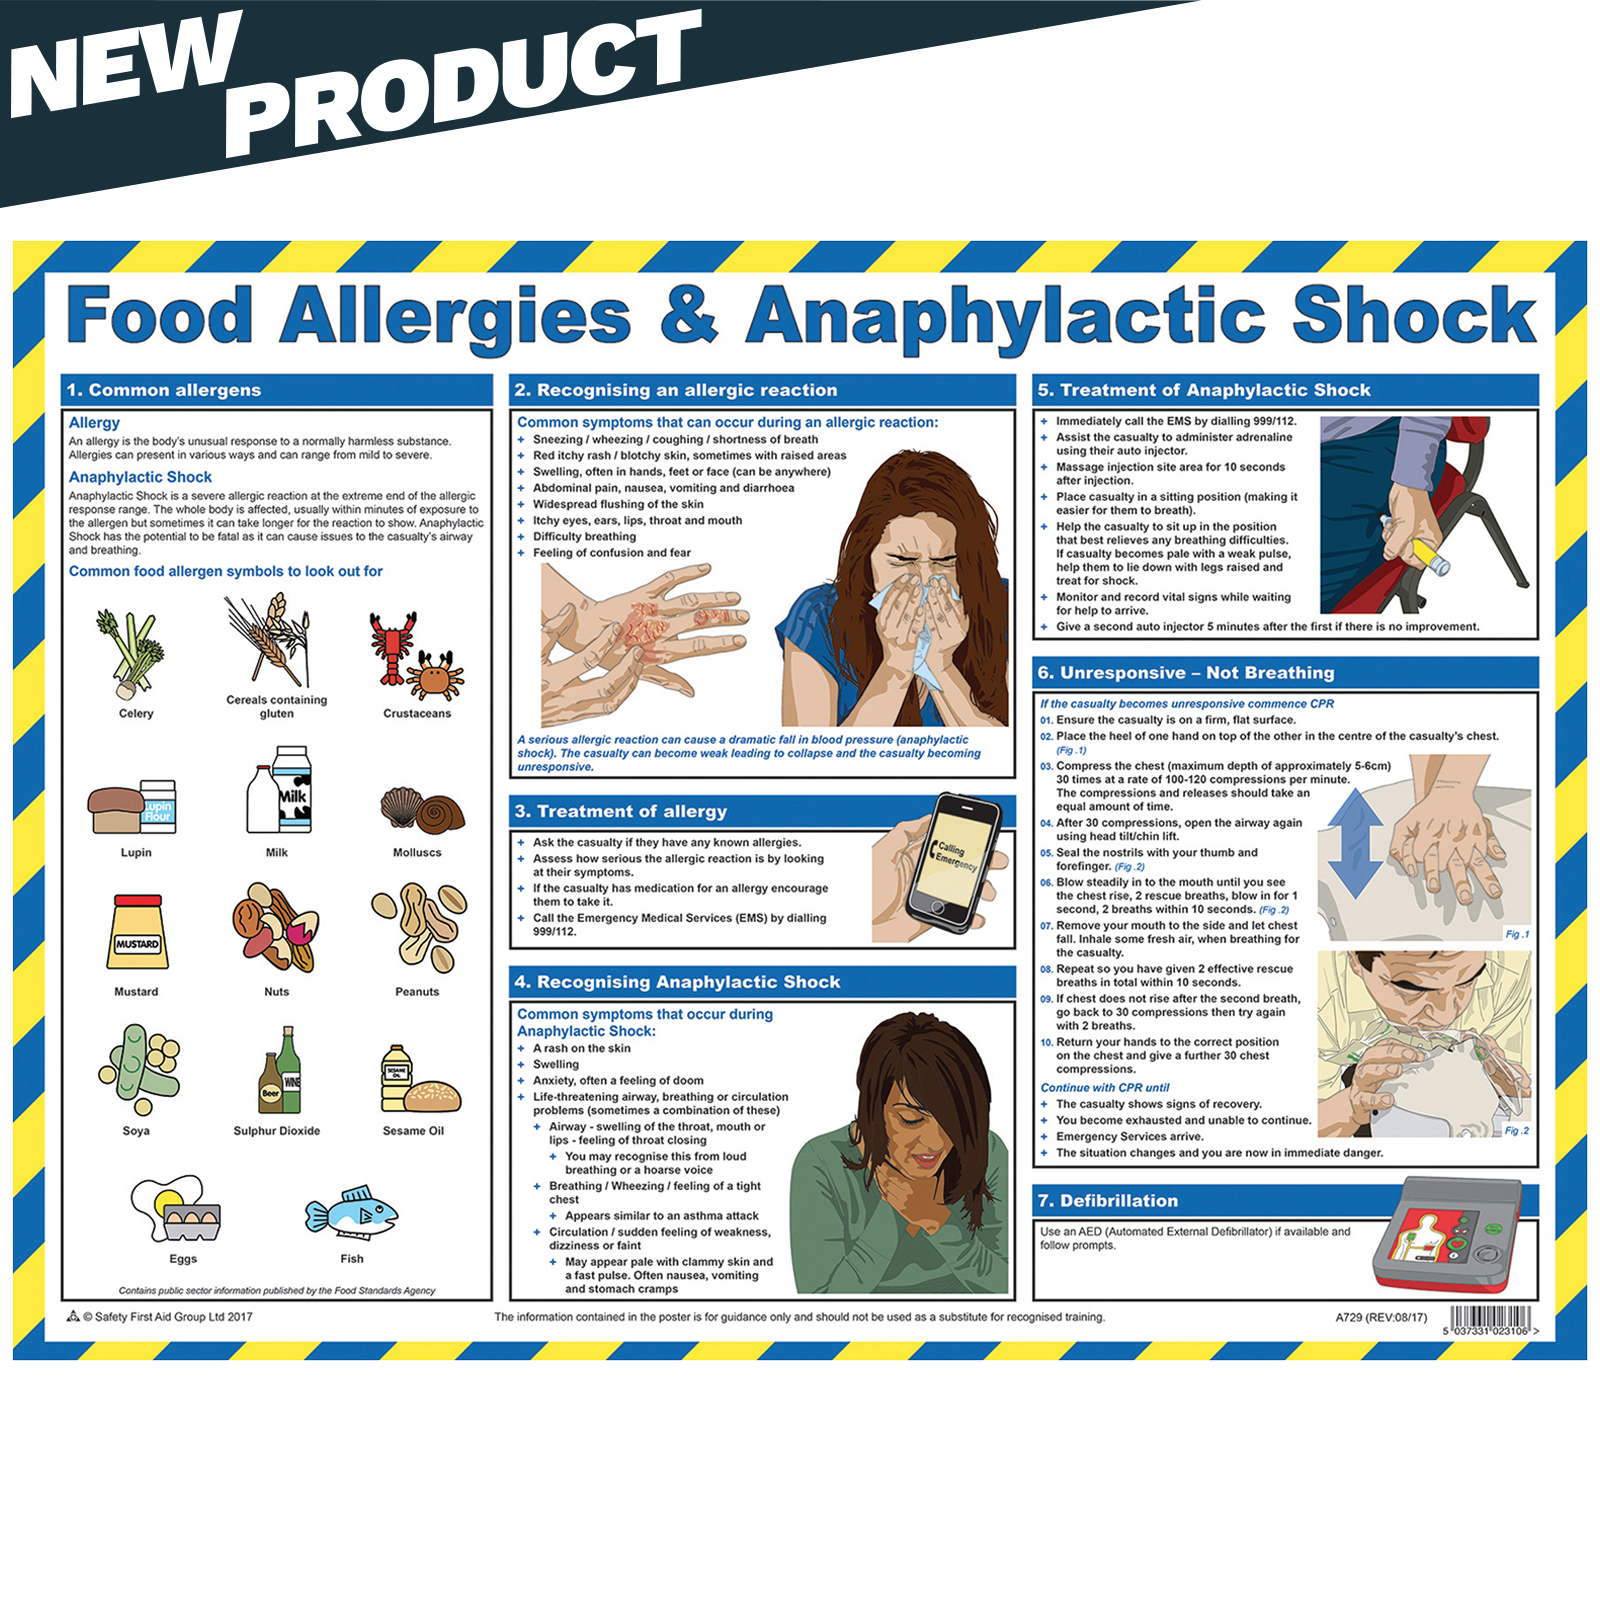 Food Allergies & Anaphylactic Shock Poster